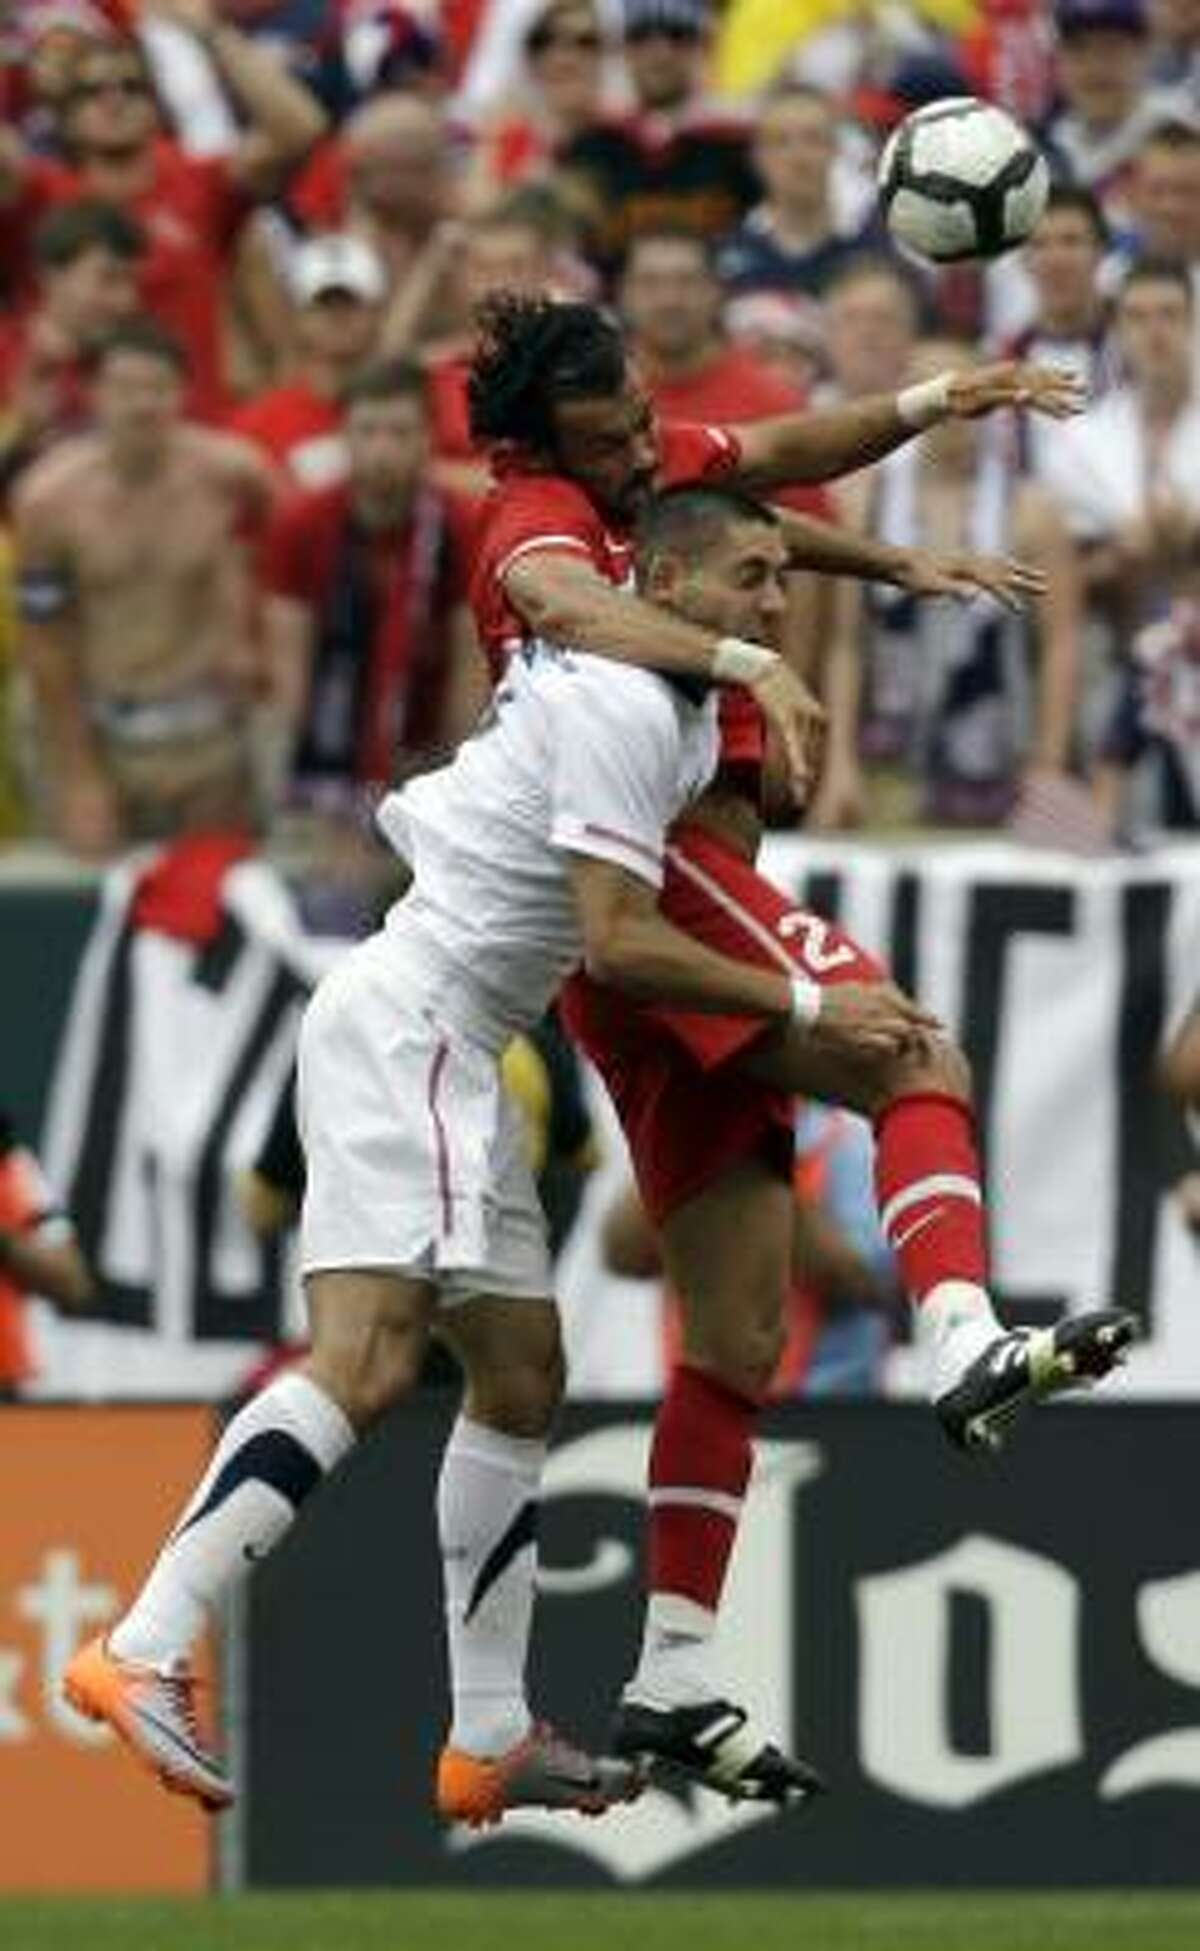 United States' Clint Dempsey, bottom, battles with Turkey's Servet Cetin for possession of the ball.